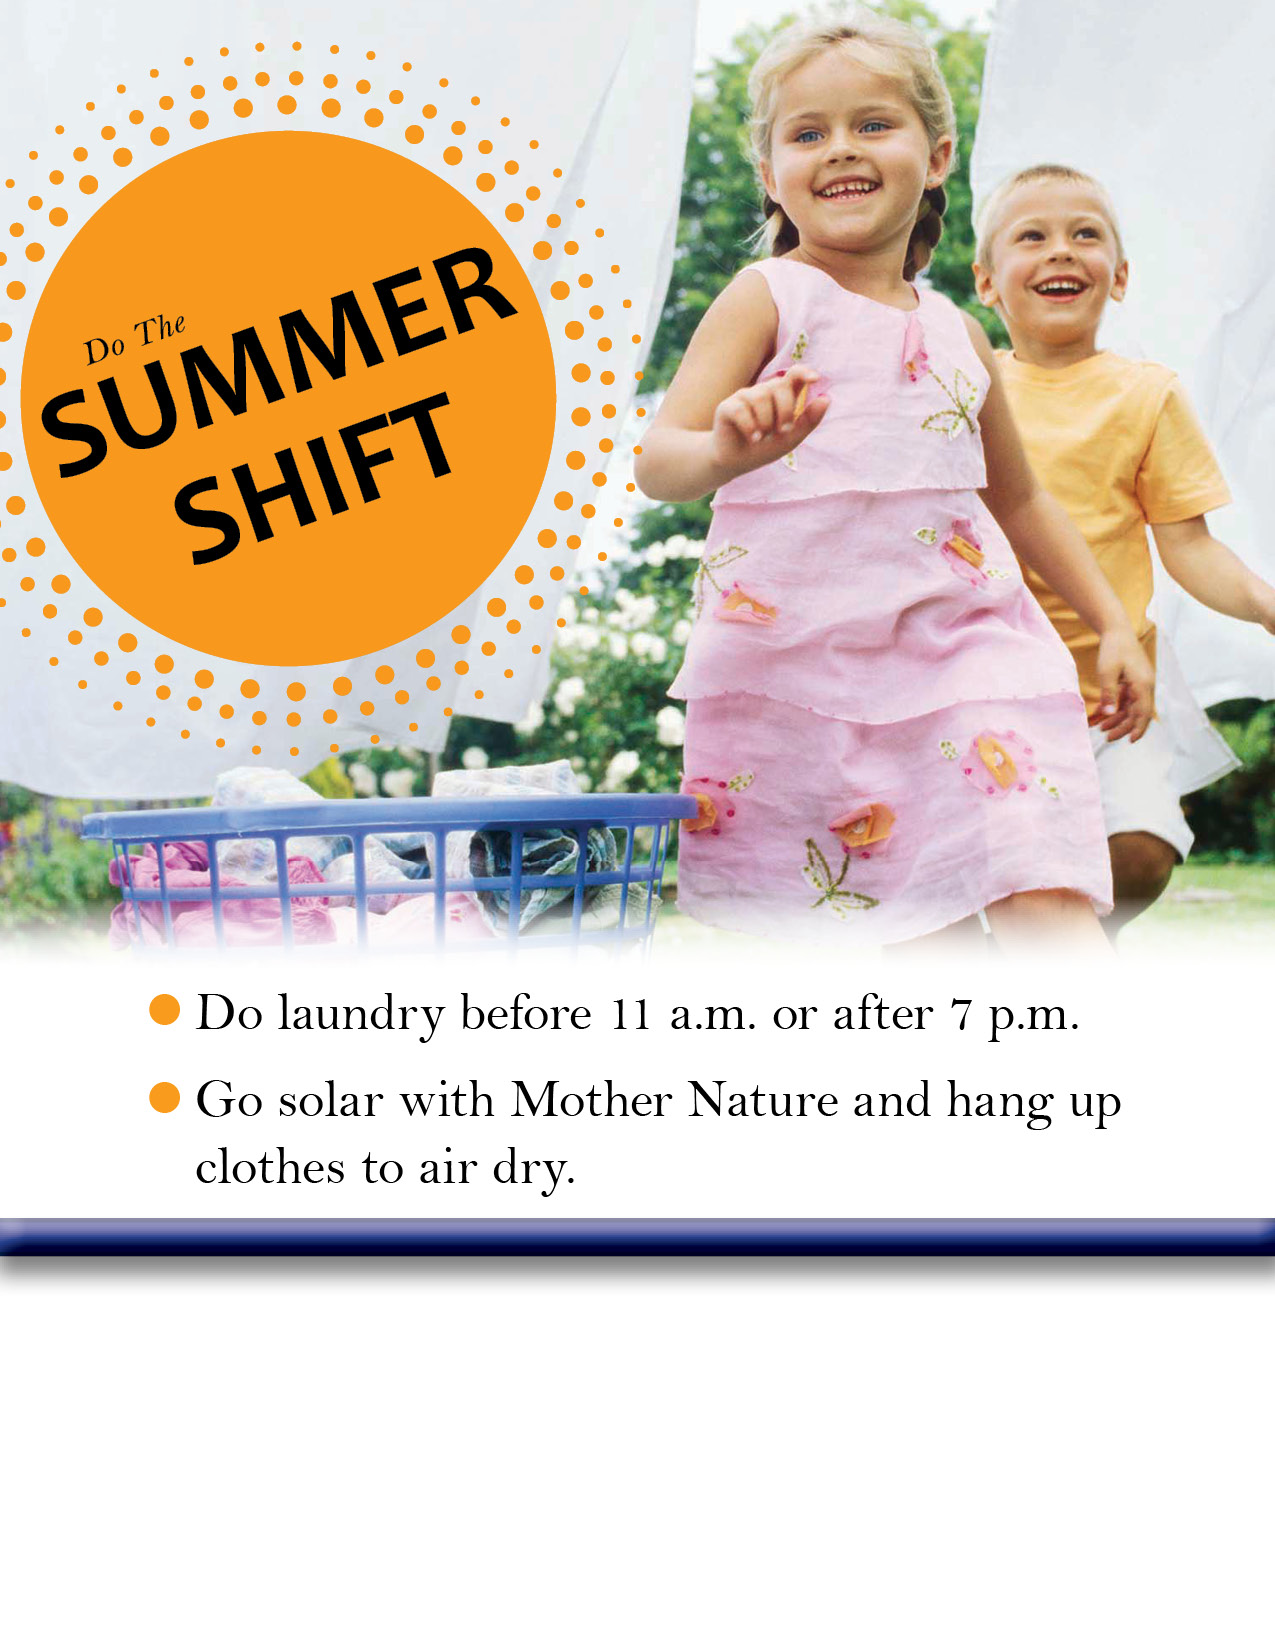 Do the Summer Shift, Wash Laundry Before or After Peak Times, Line Dry